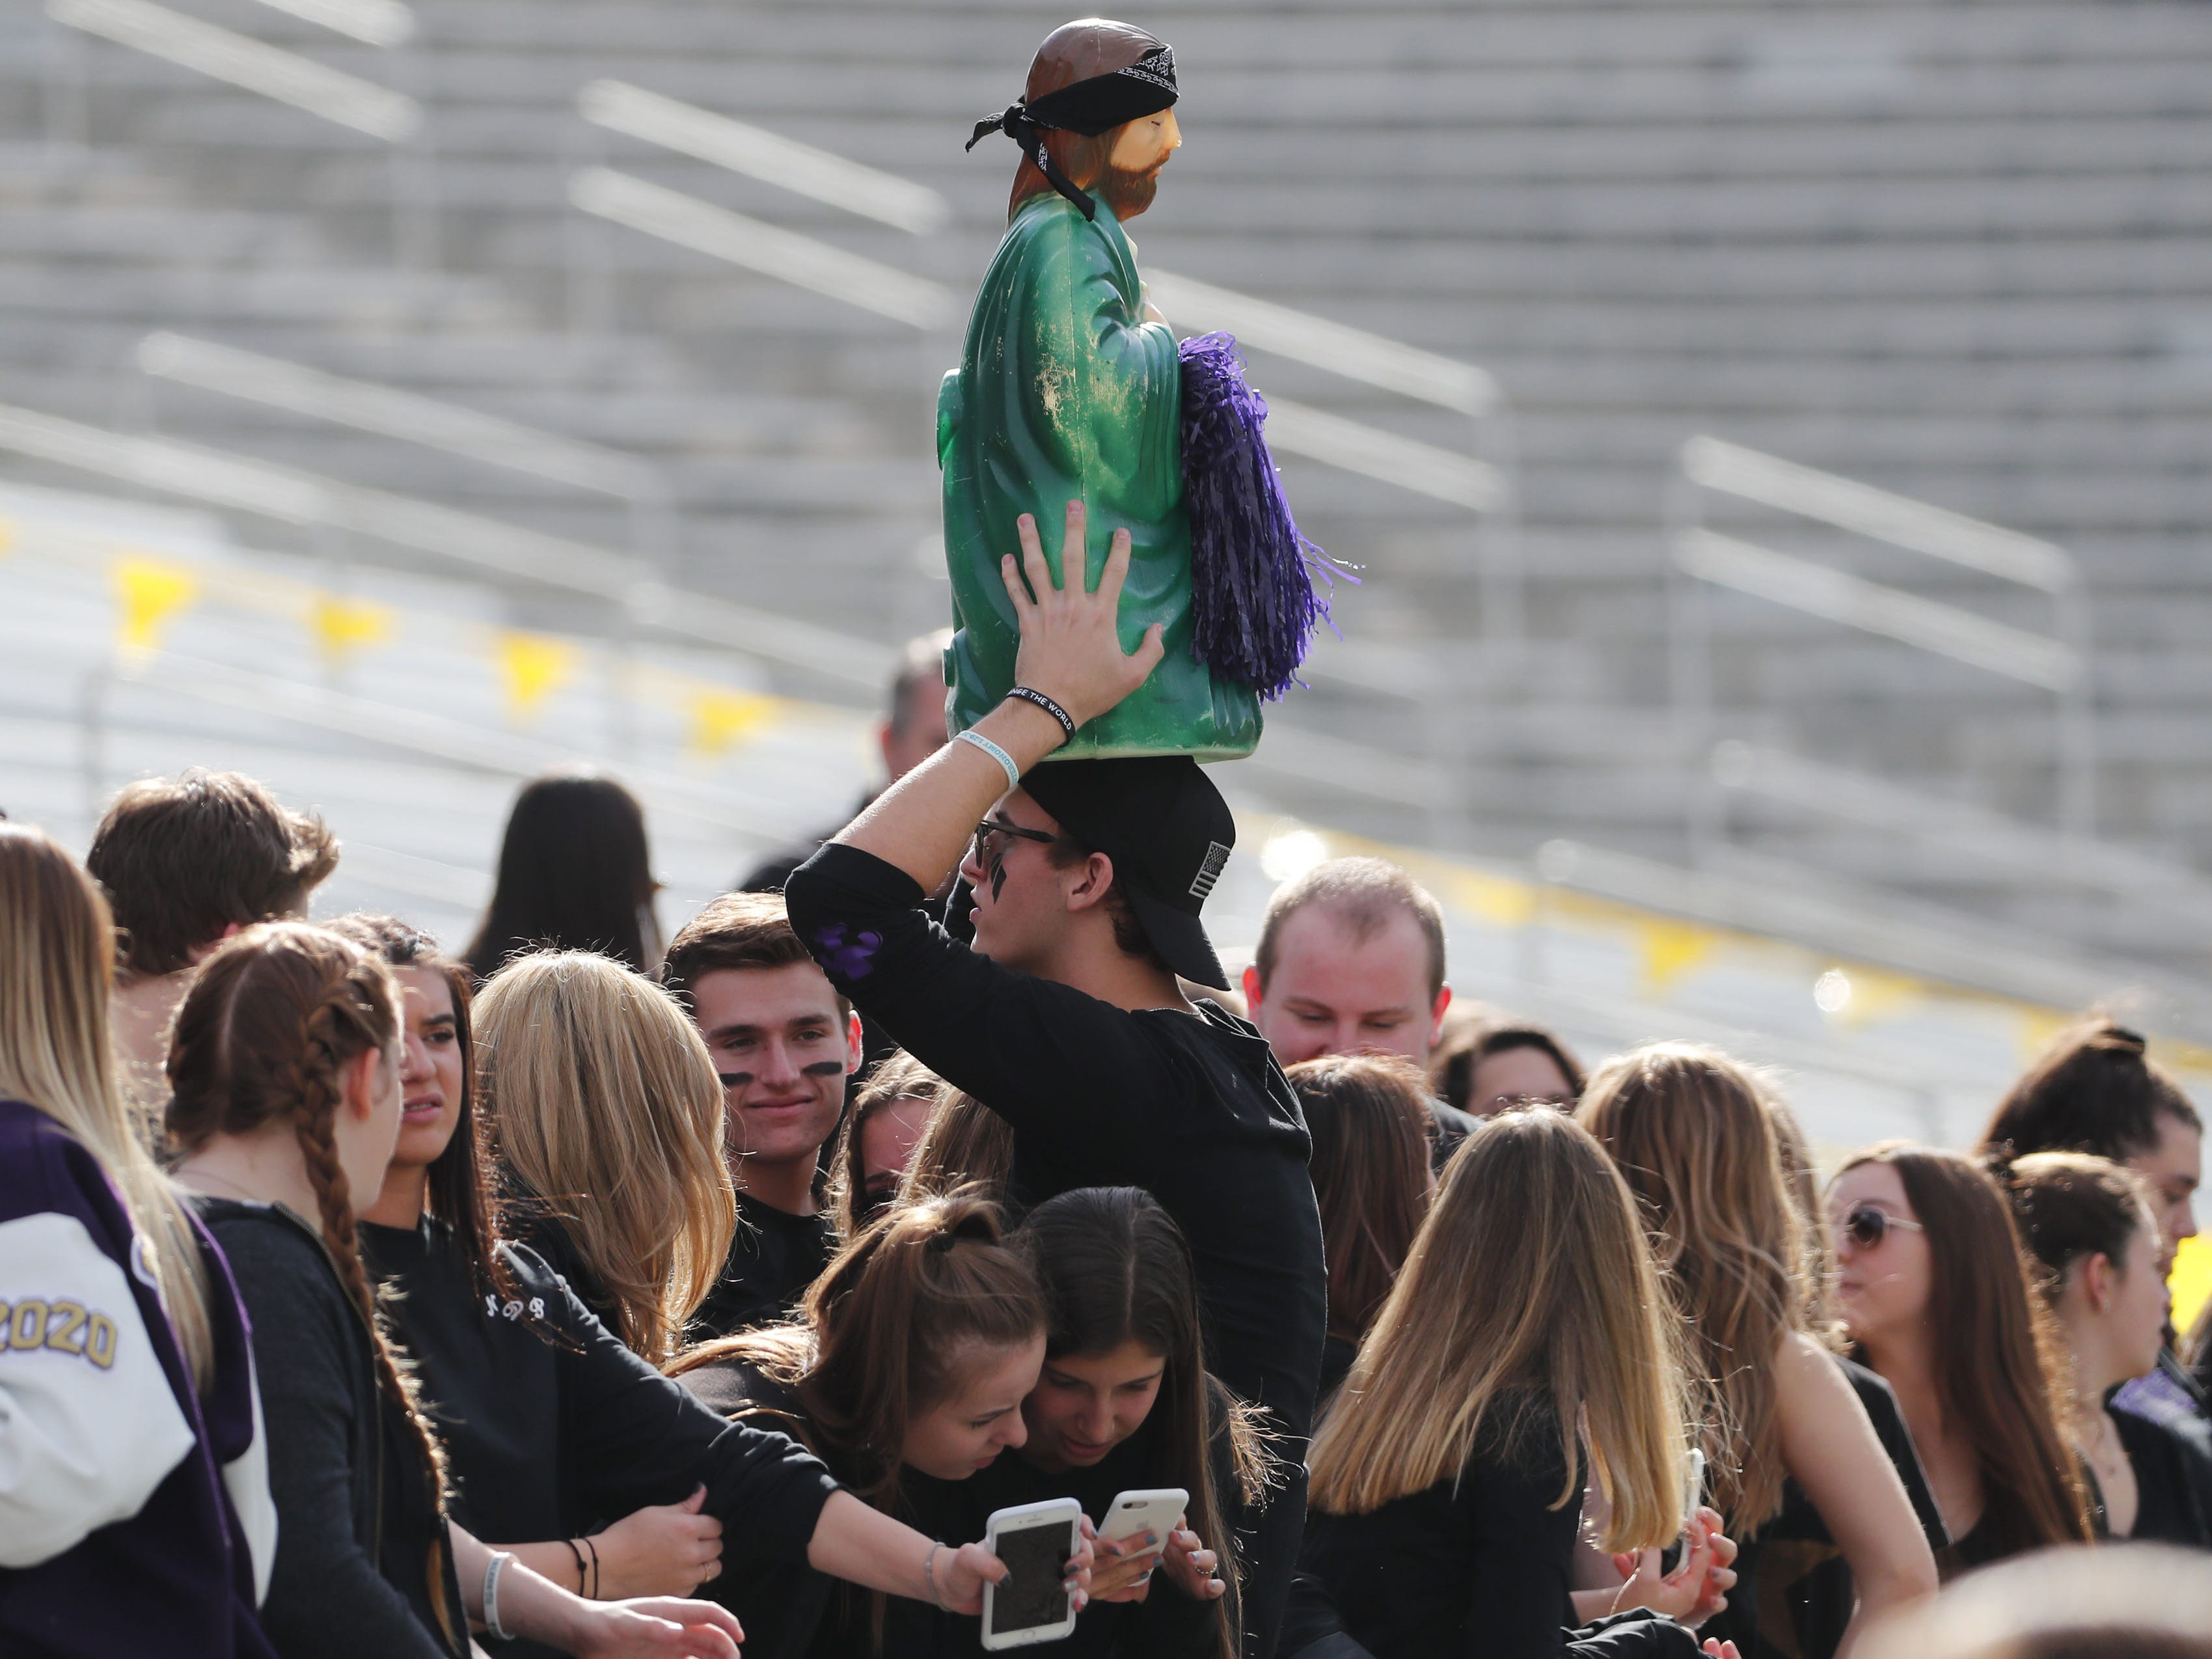 Notre Dame Prep students hold a statue during the 5A state football championship game against Centennial at Sun Devil Stadium December 1, 2018. #azhsfb